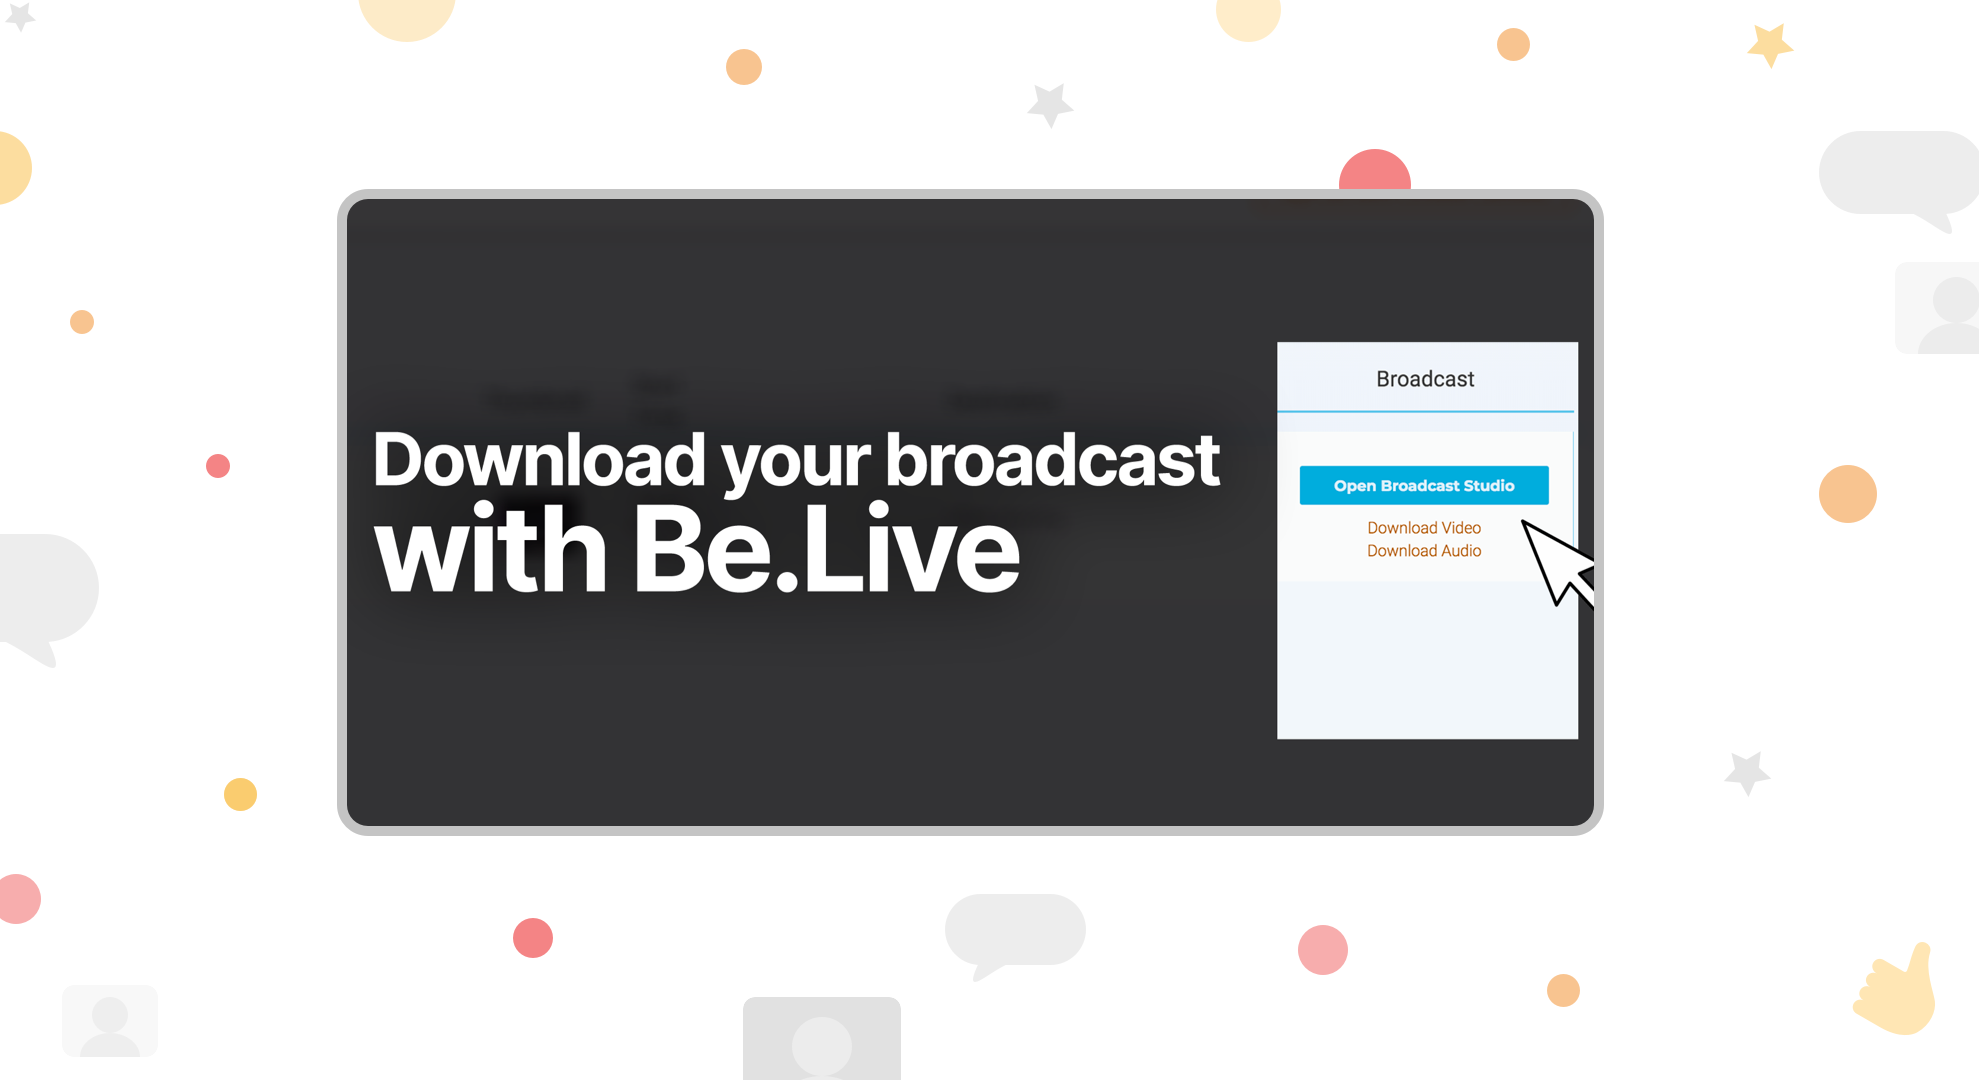 Download Broadcast from BeLive